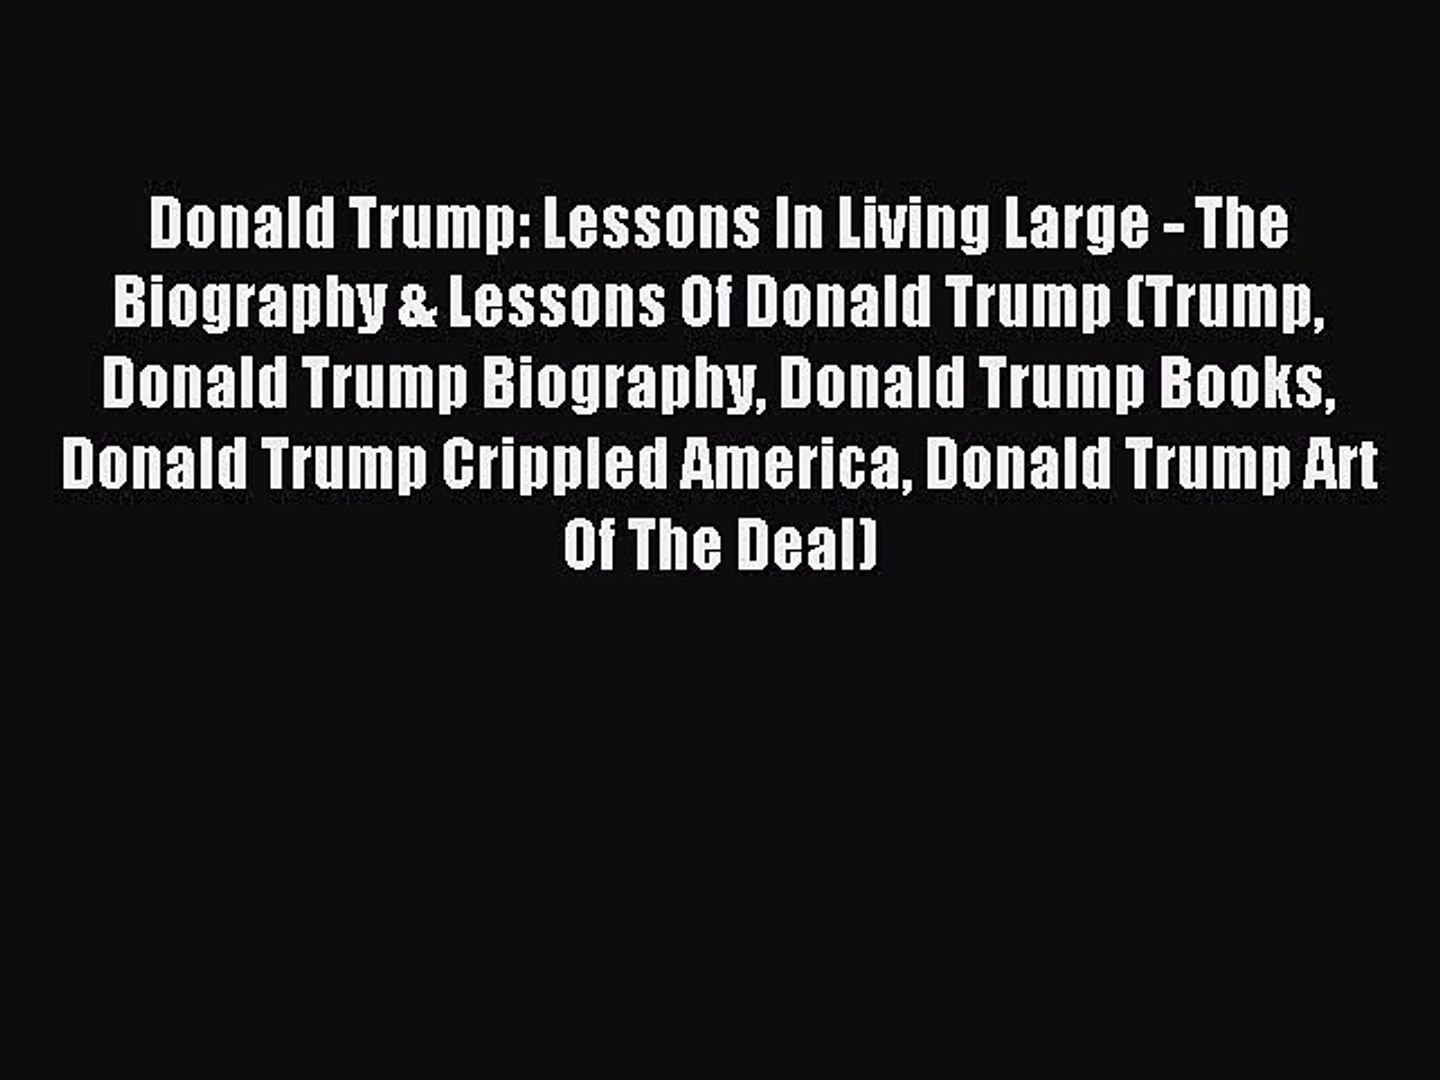 Read Donald Trump: Lessons In Living Large - The Biography & Lessons Of Donald Trump (Trump